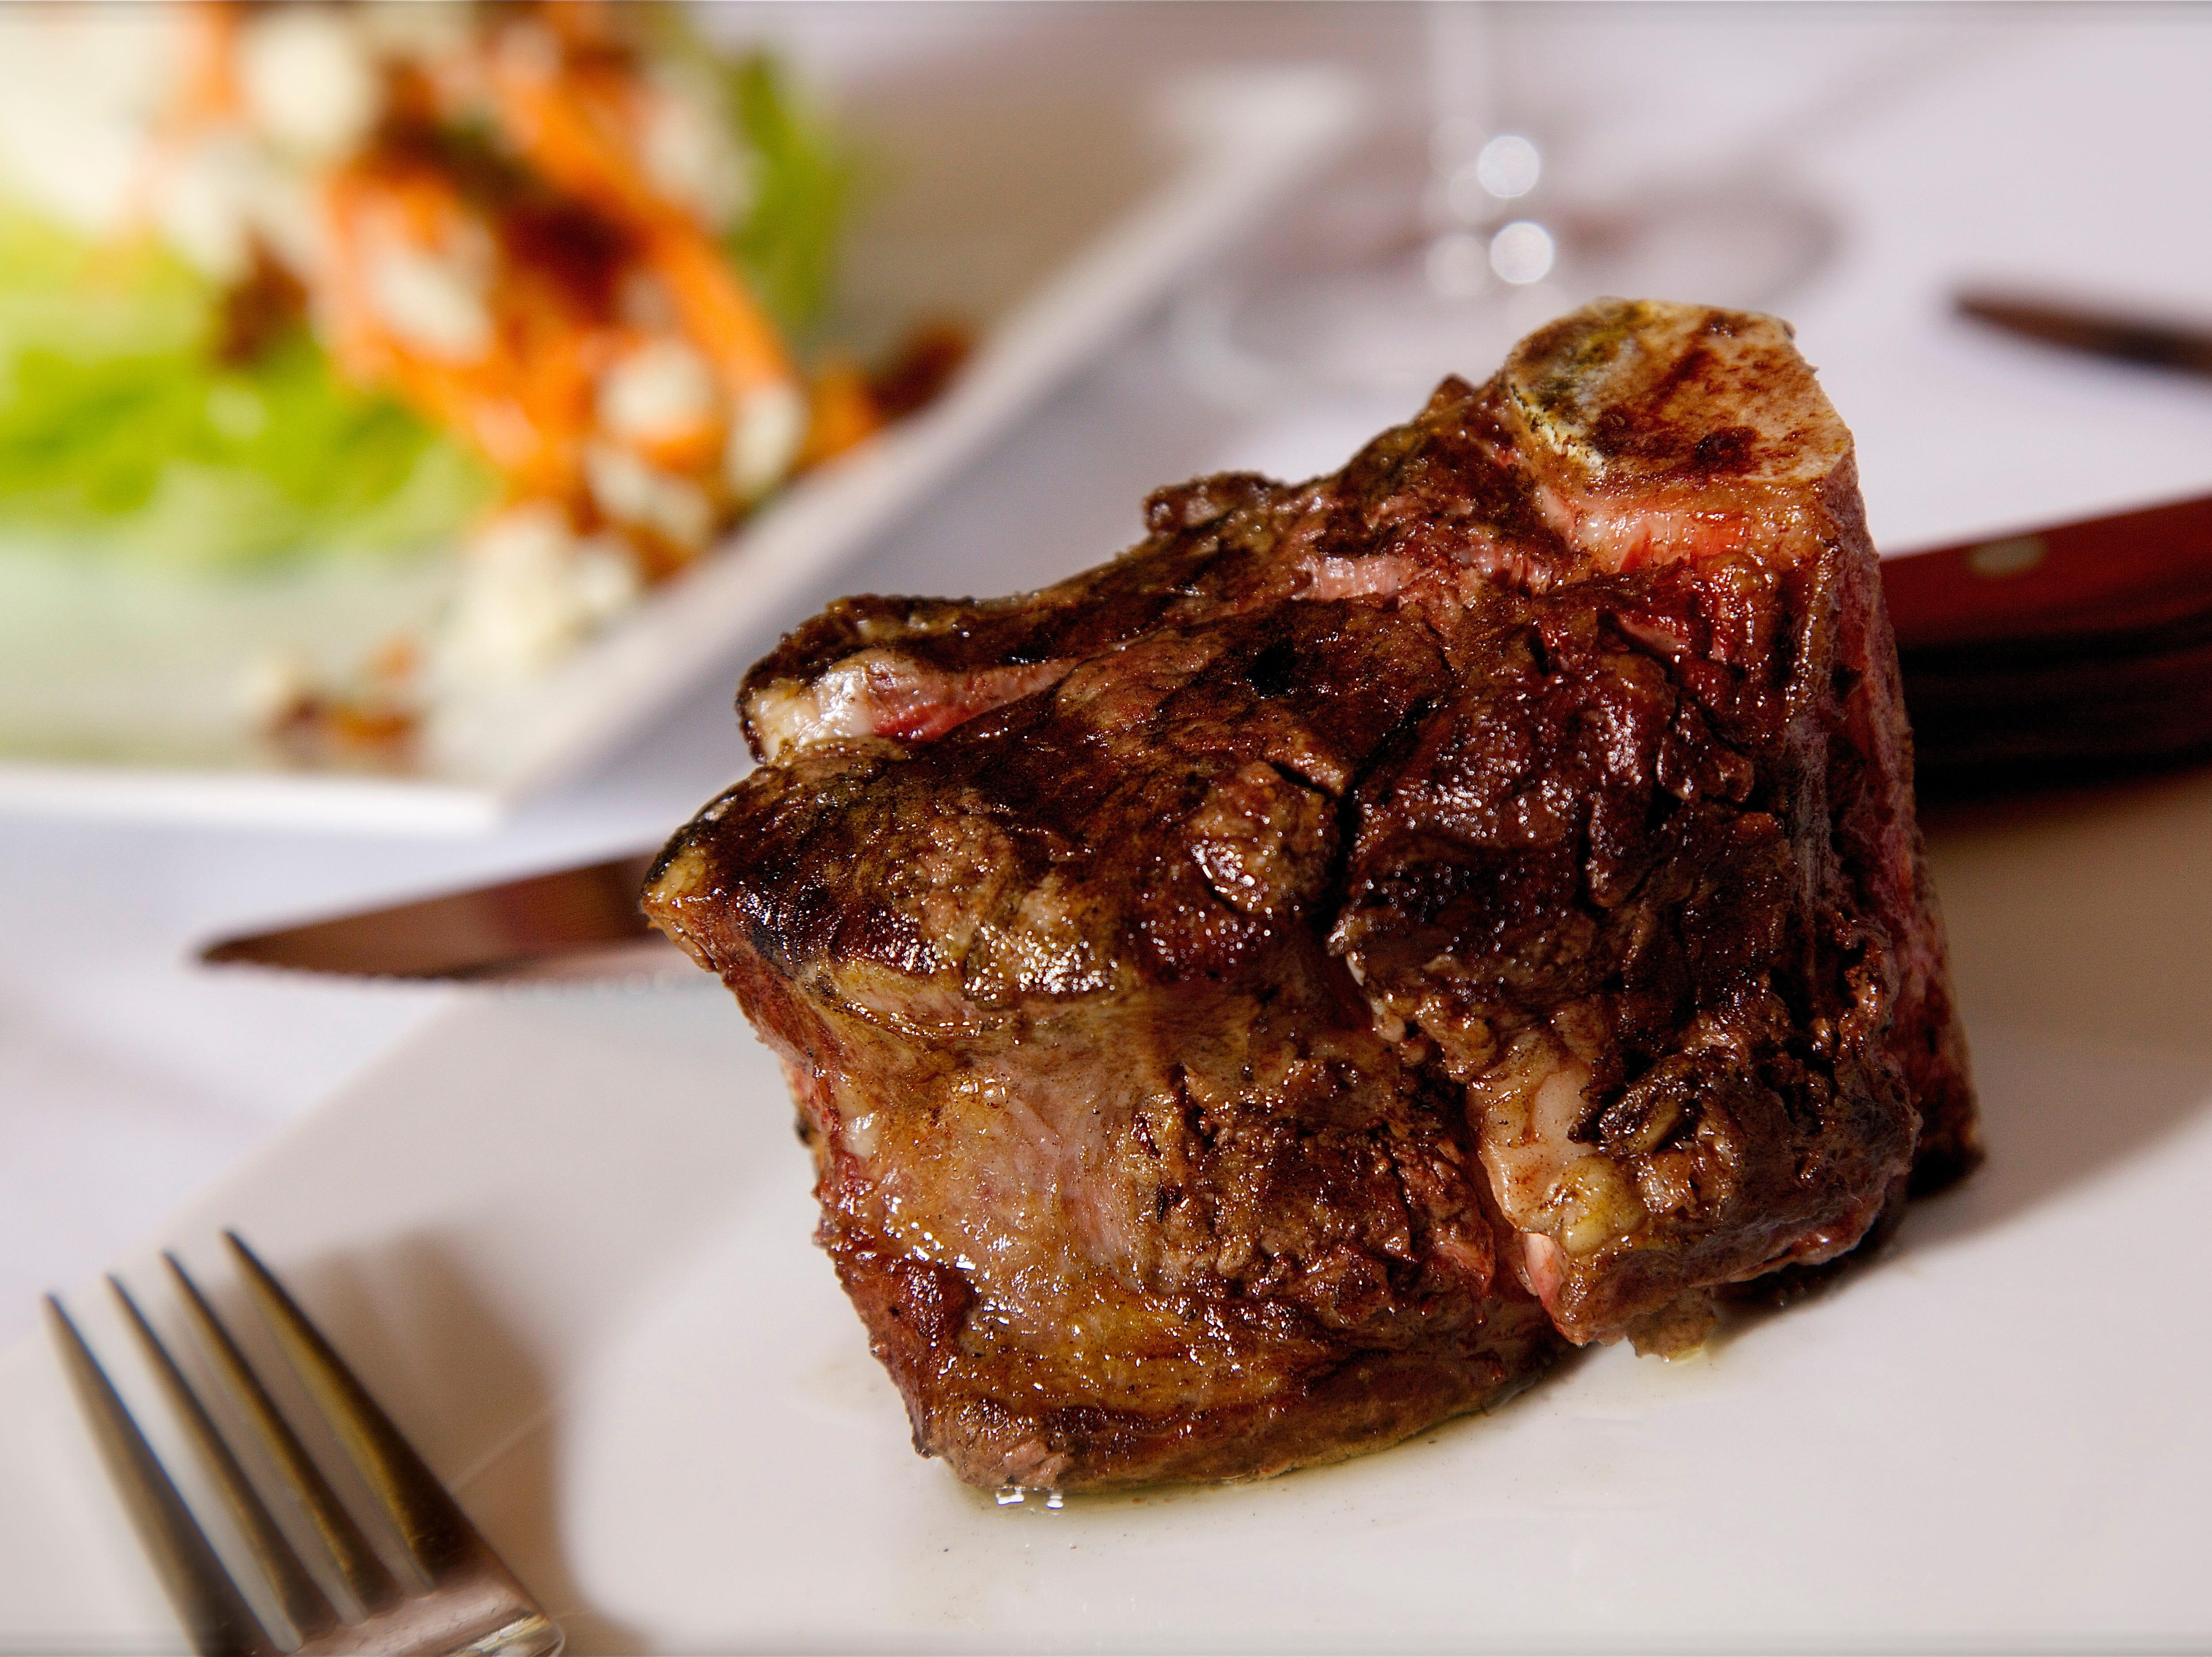 The menu at Keeler's features Certified Angus Beef specialty cut steaks and American comfort food.